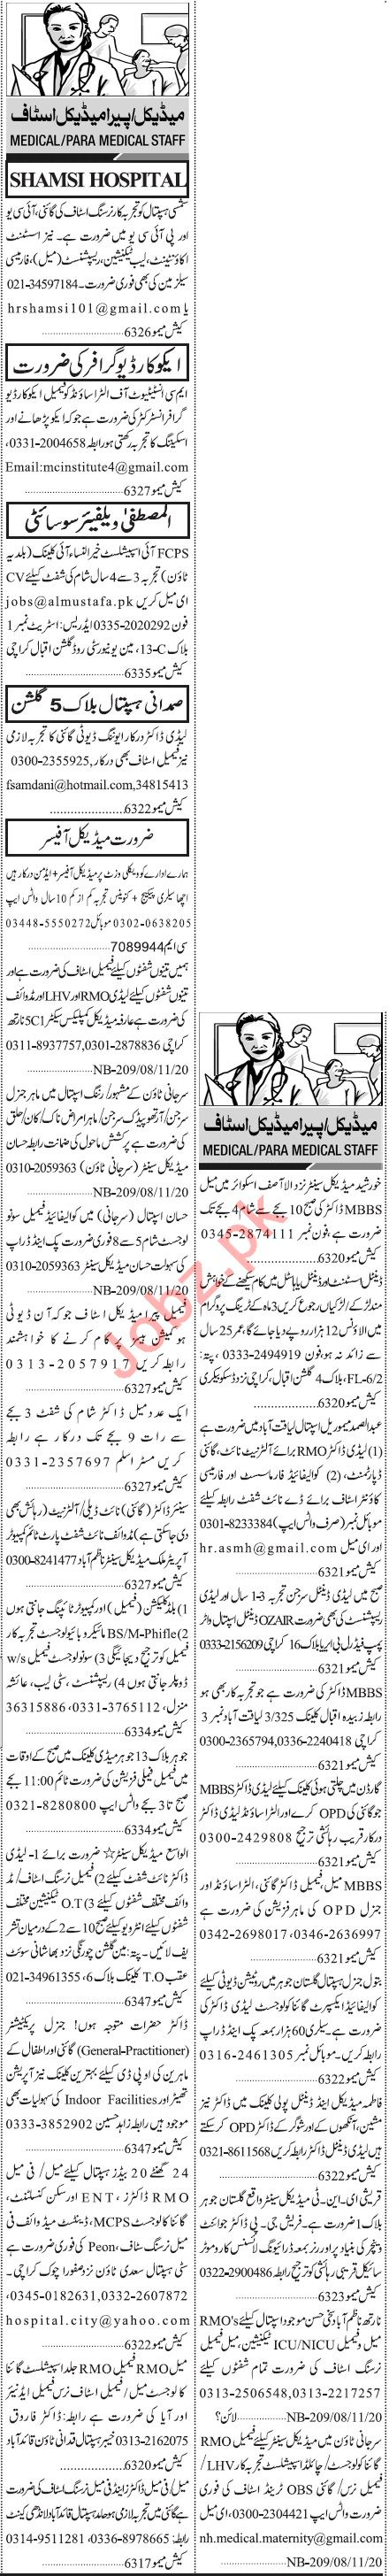 Jang Sunday Classified Ads 8th Nov 2020 for Medical Staff